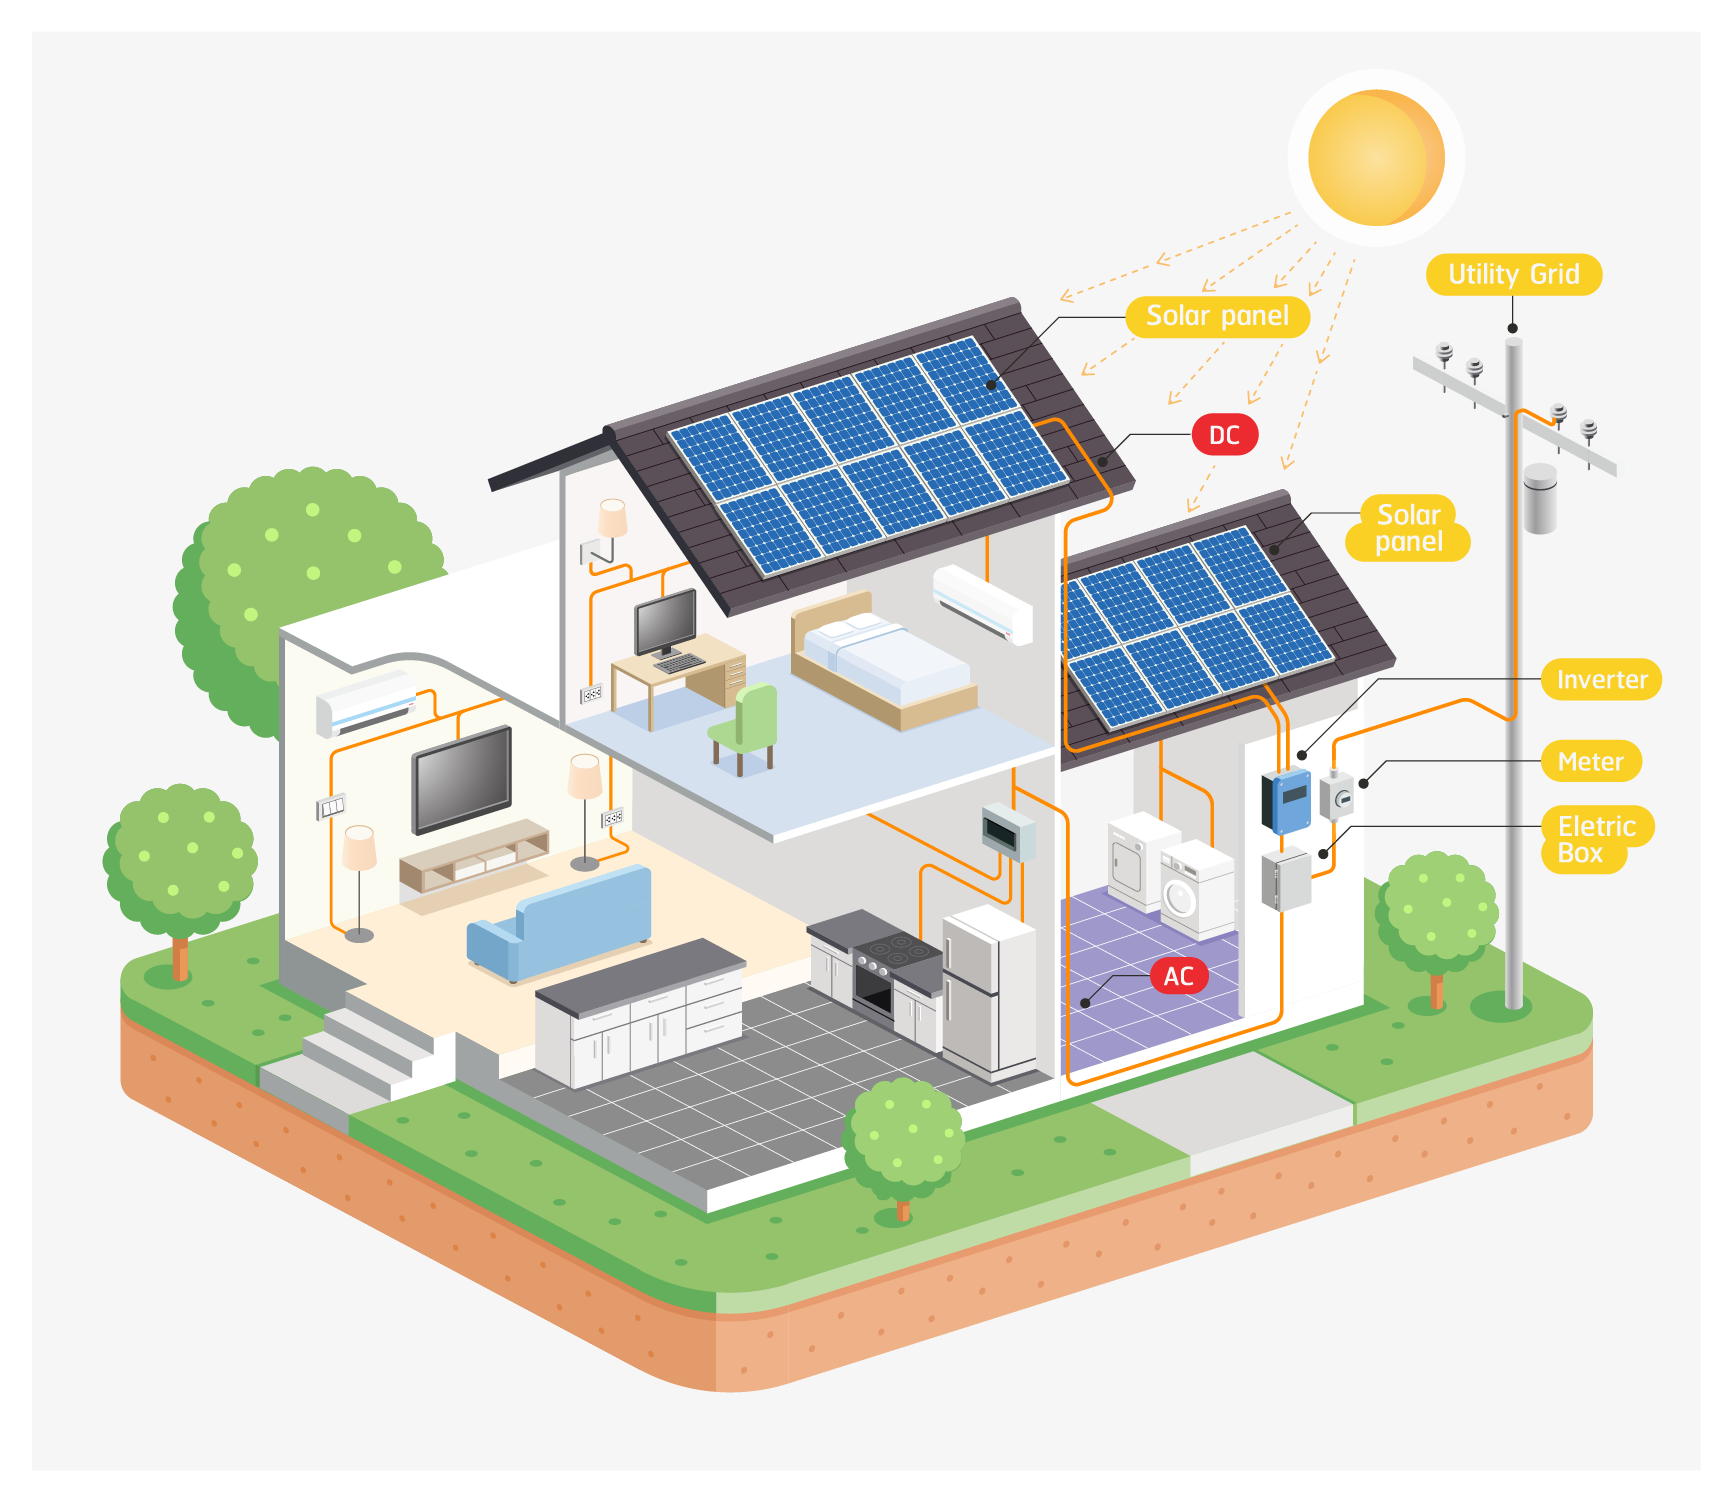 Landing Solar Panel Wiring Diagram On Panels For Homes Claim Up To 600 Towards The Purchase And Installation Of An Electric Vehicle Home Charger Unit